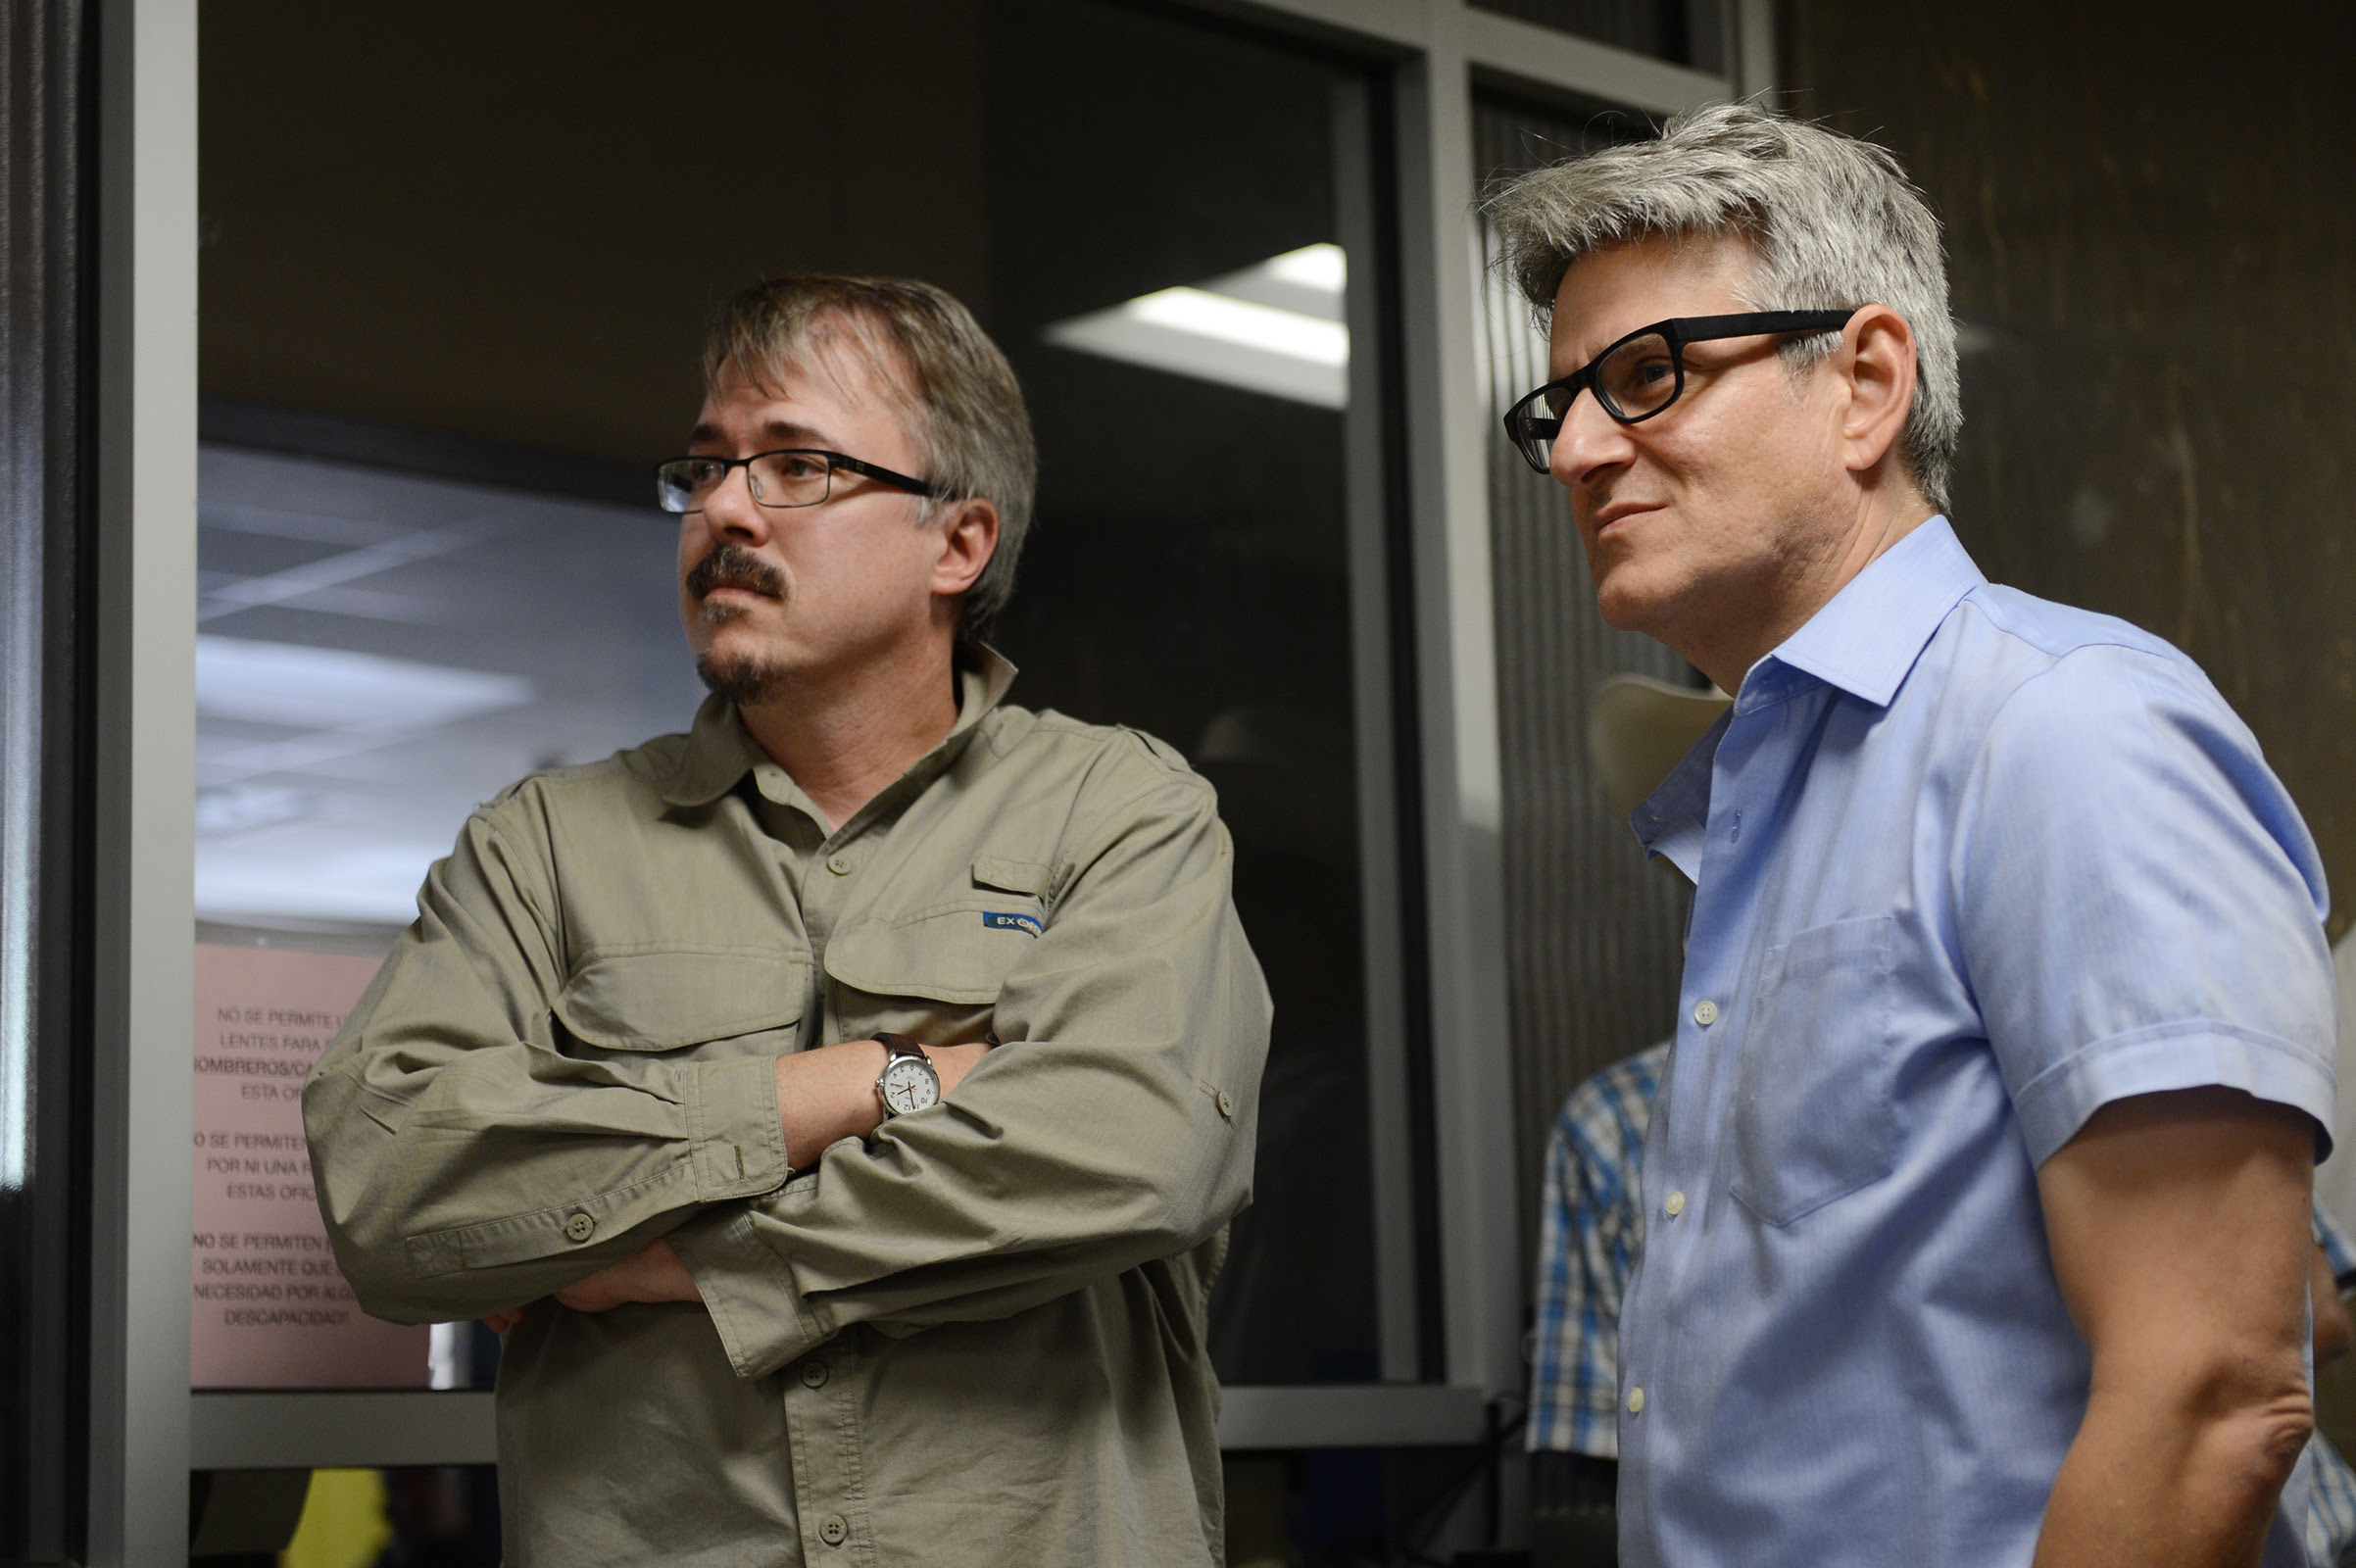 Vince Gilligan and Peter Gould - Better Call Saul _ Season 2, Episode 1 _ BTS - Photo Credit: Ursula Coyote/ Sony Pictures Television/ AMC